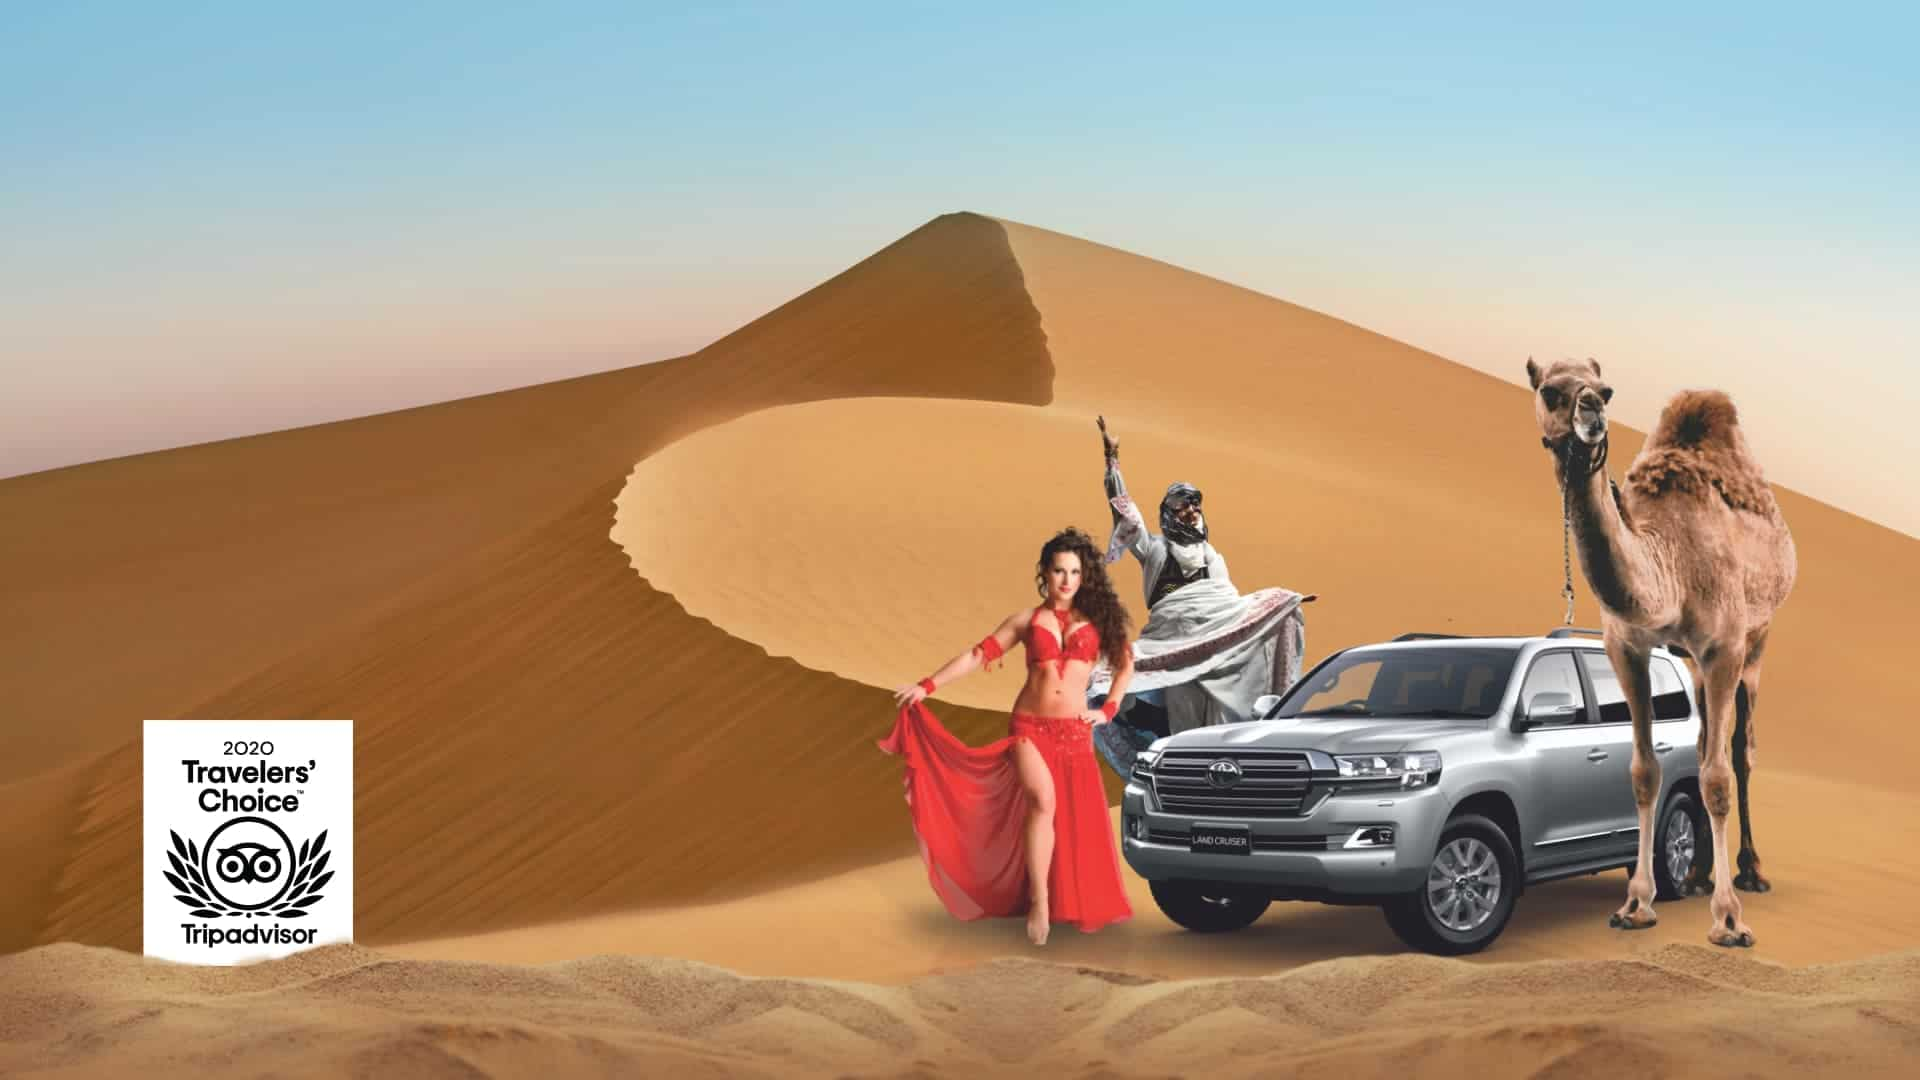 Other than seeing the animals of the desert on your desert safari, the desert safari will give you the opportunity to see the amazing scenery of Dubai. A well